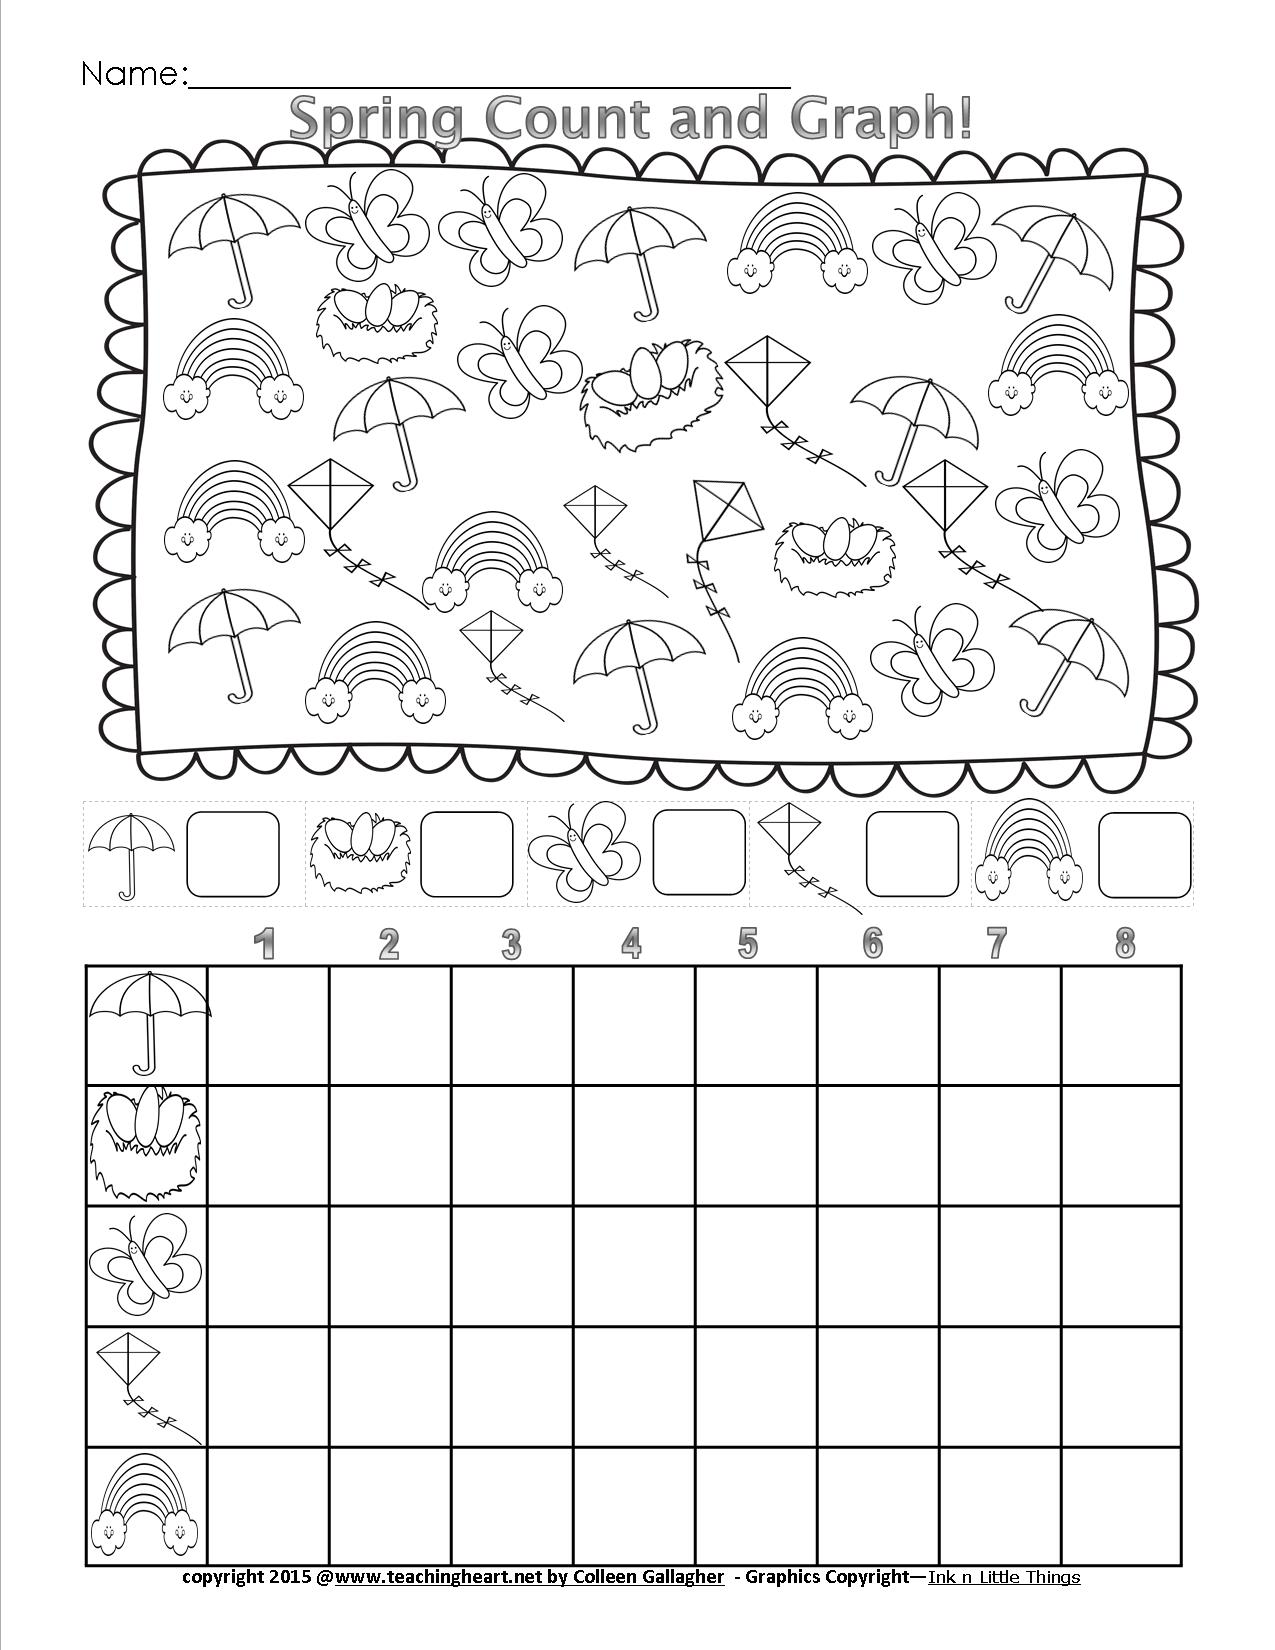 Worksheets Graphing Pictures Worksheets spring count and graph free teaching heart blog counting graphing worksheet free